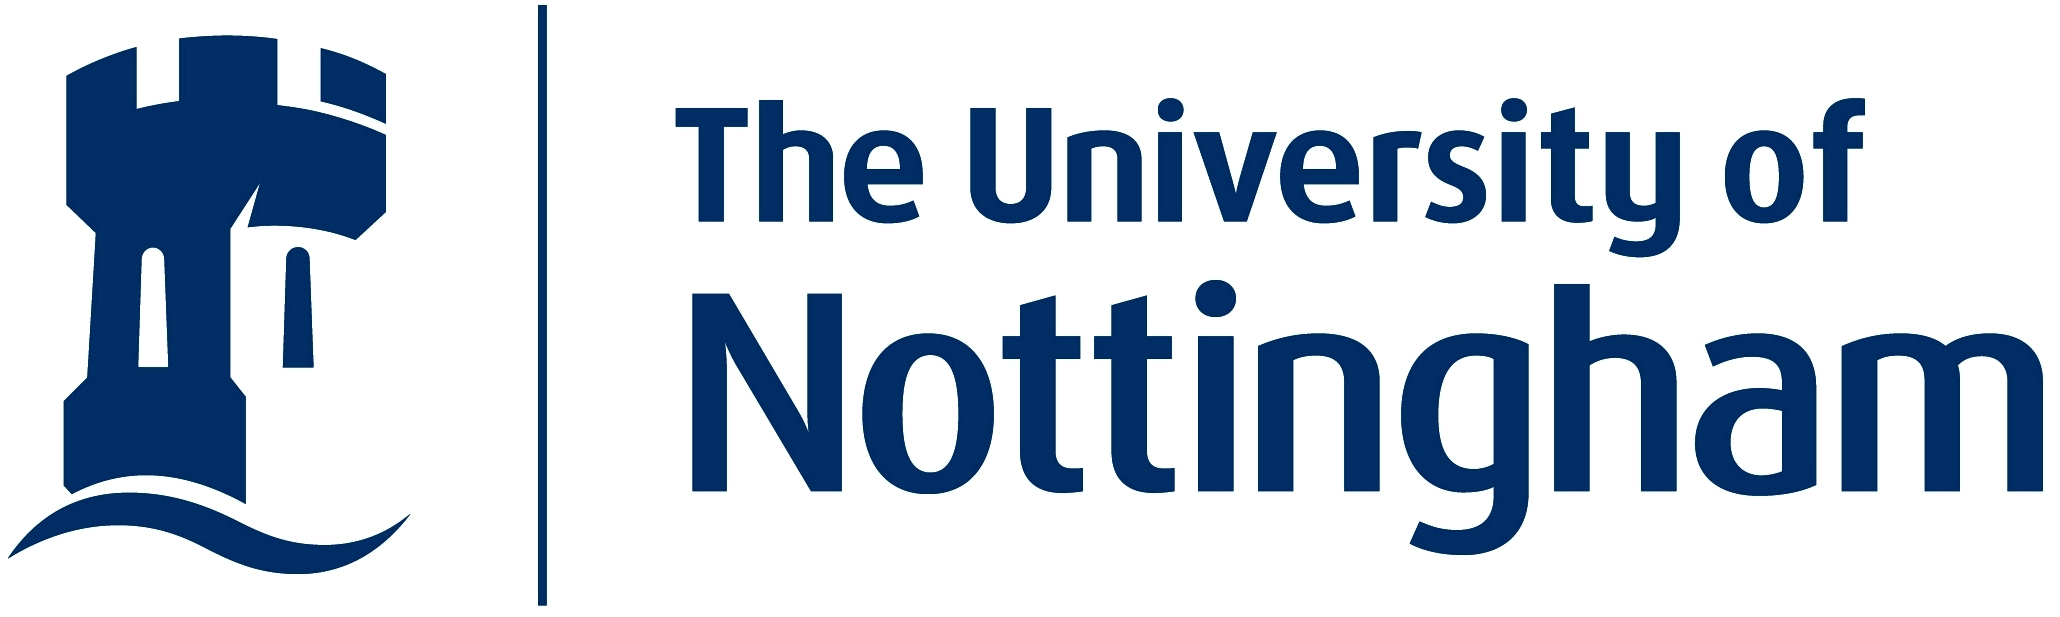 University of Nottingham banner logo